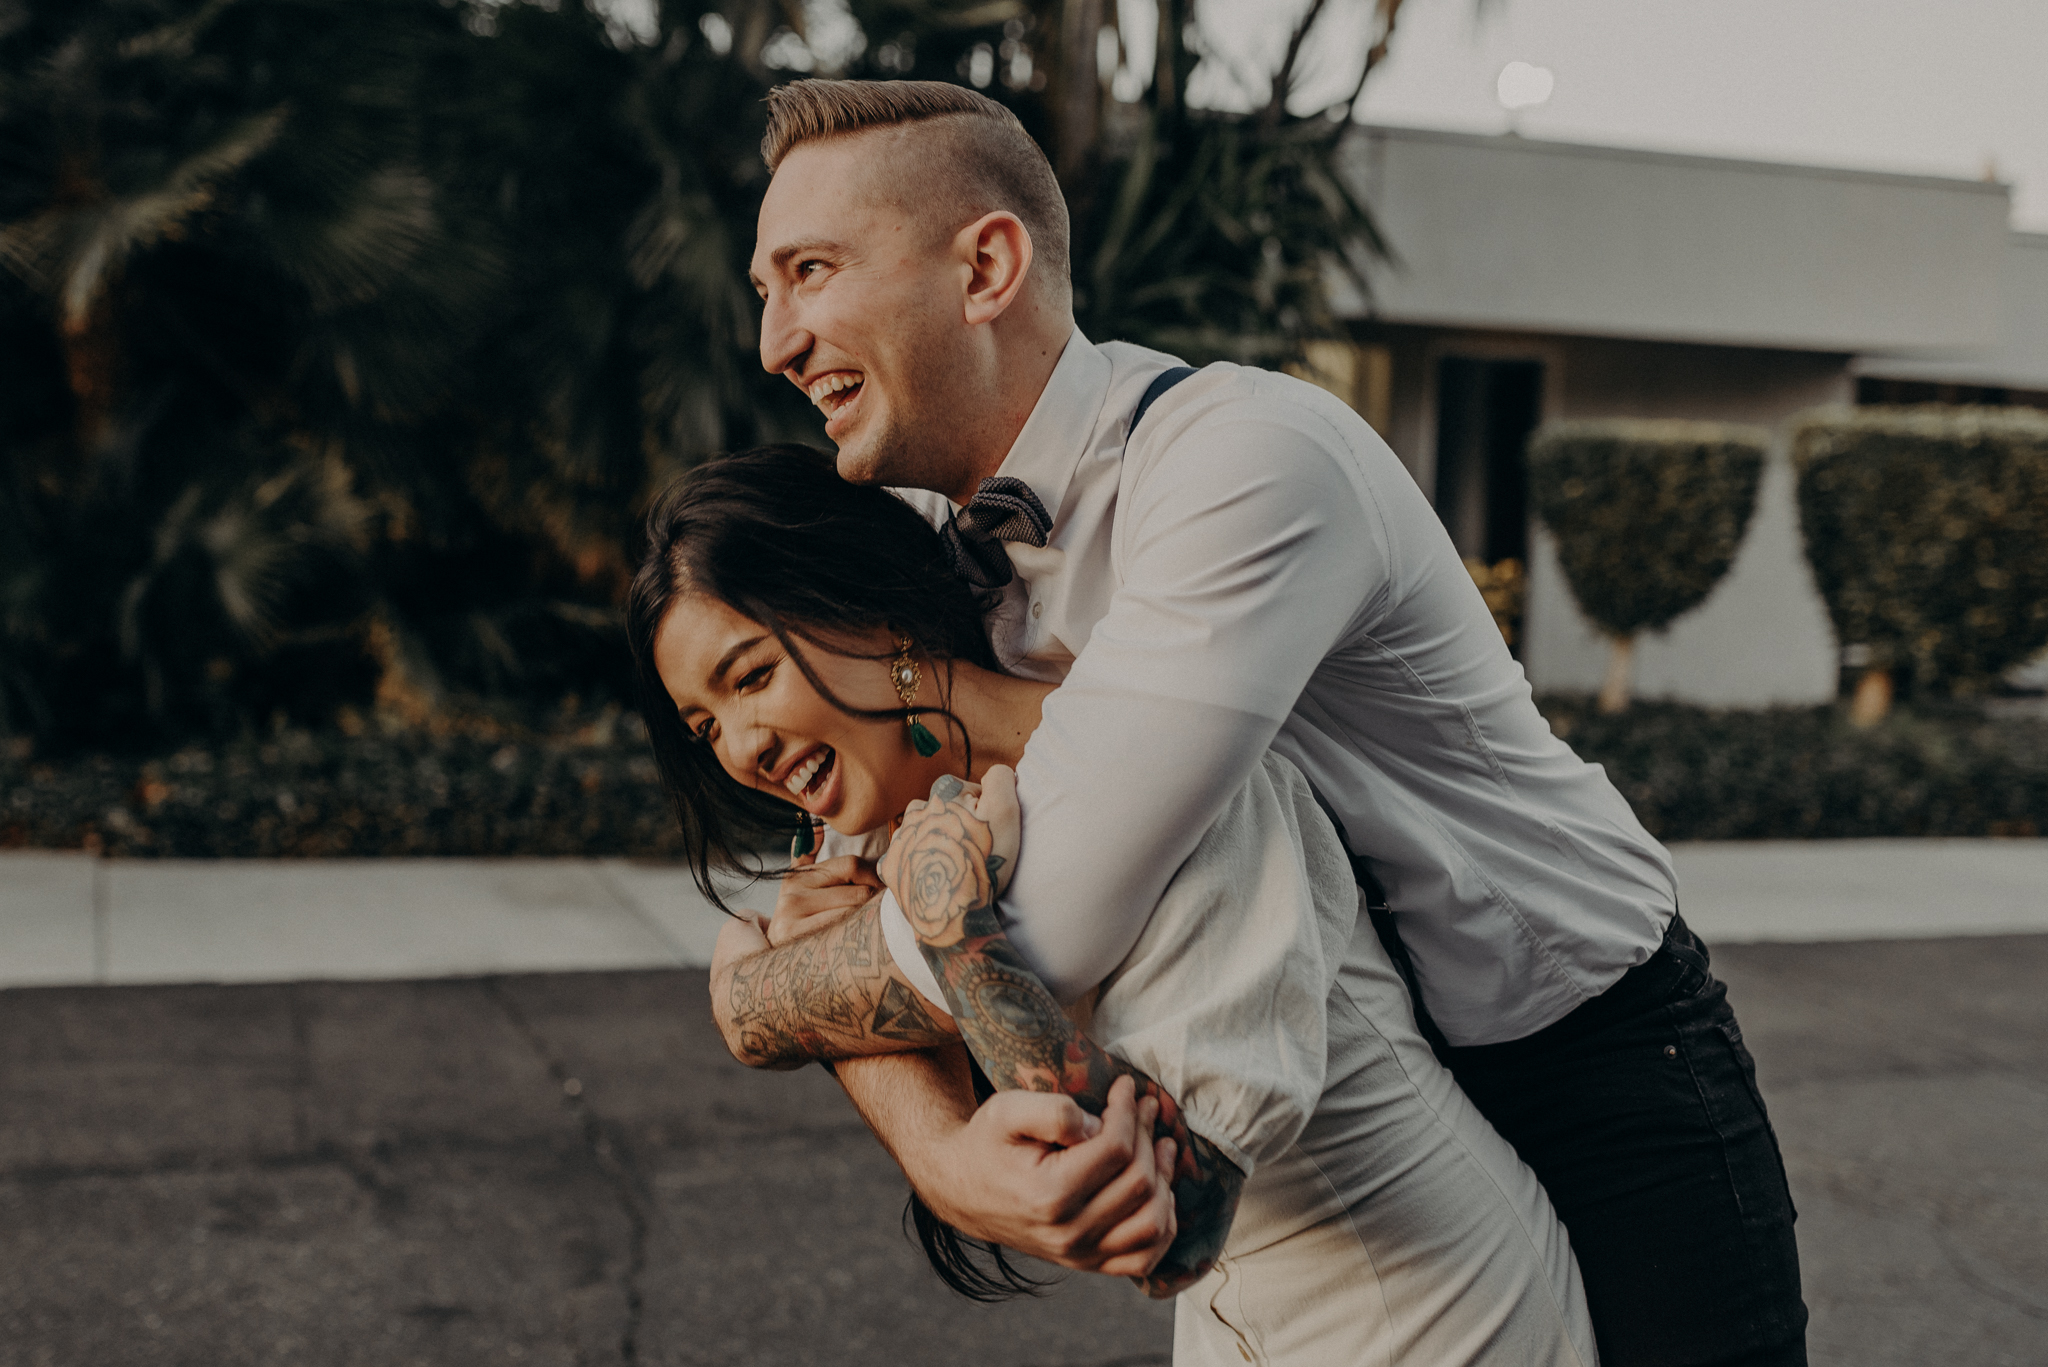 Wedding Photographer in LA - Los Angeles Wedding Photos - Tattoo Shop Engagement Session - IsaiahAndTaylor.com-047.jpg